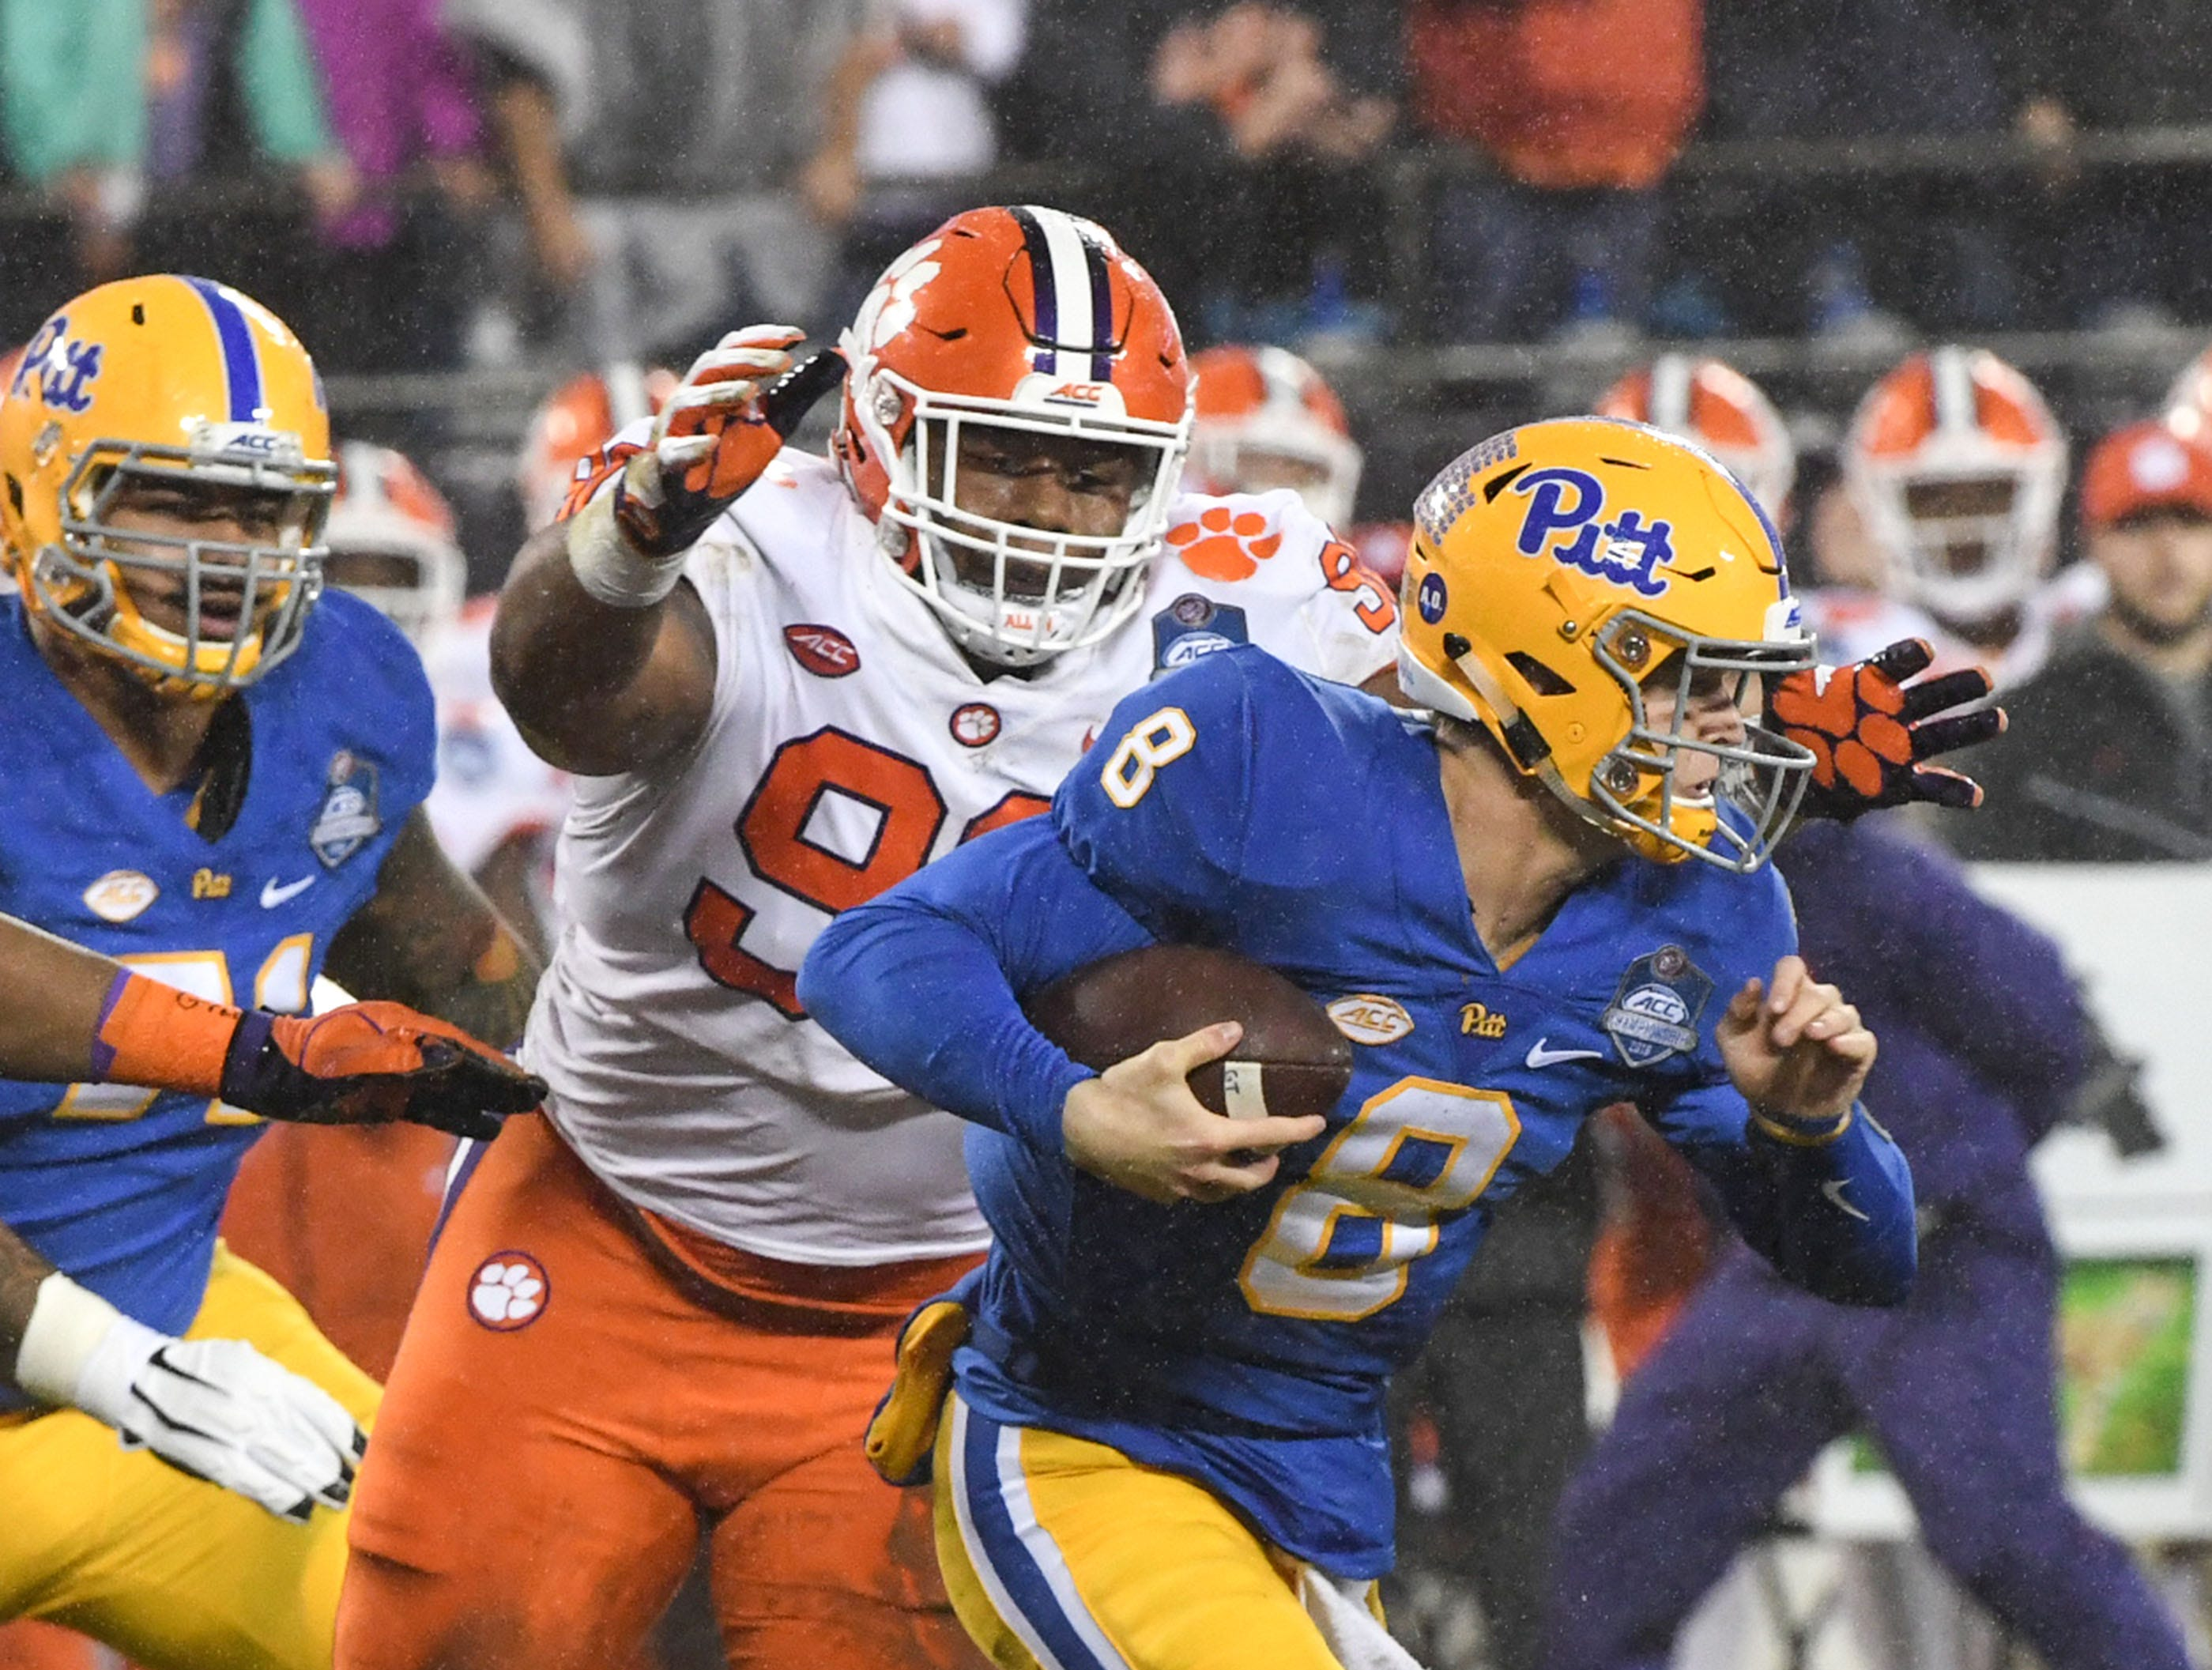 Clemson defensive lineman Dexter Lawrence (90) sacks Pittsburgh quarterback Kenny Pickett (8) during the first quarter of the Dr. Pepper ACC football championship at Bank of America Stadium in Charlotte, N.C. on Saturday, December 1, 2018.